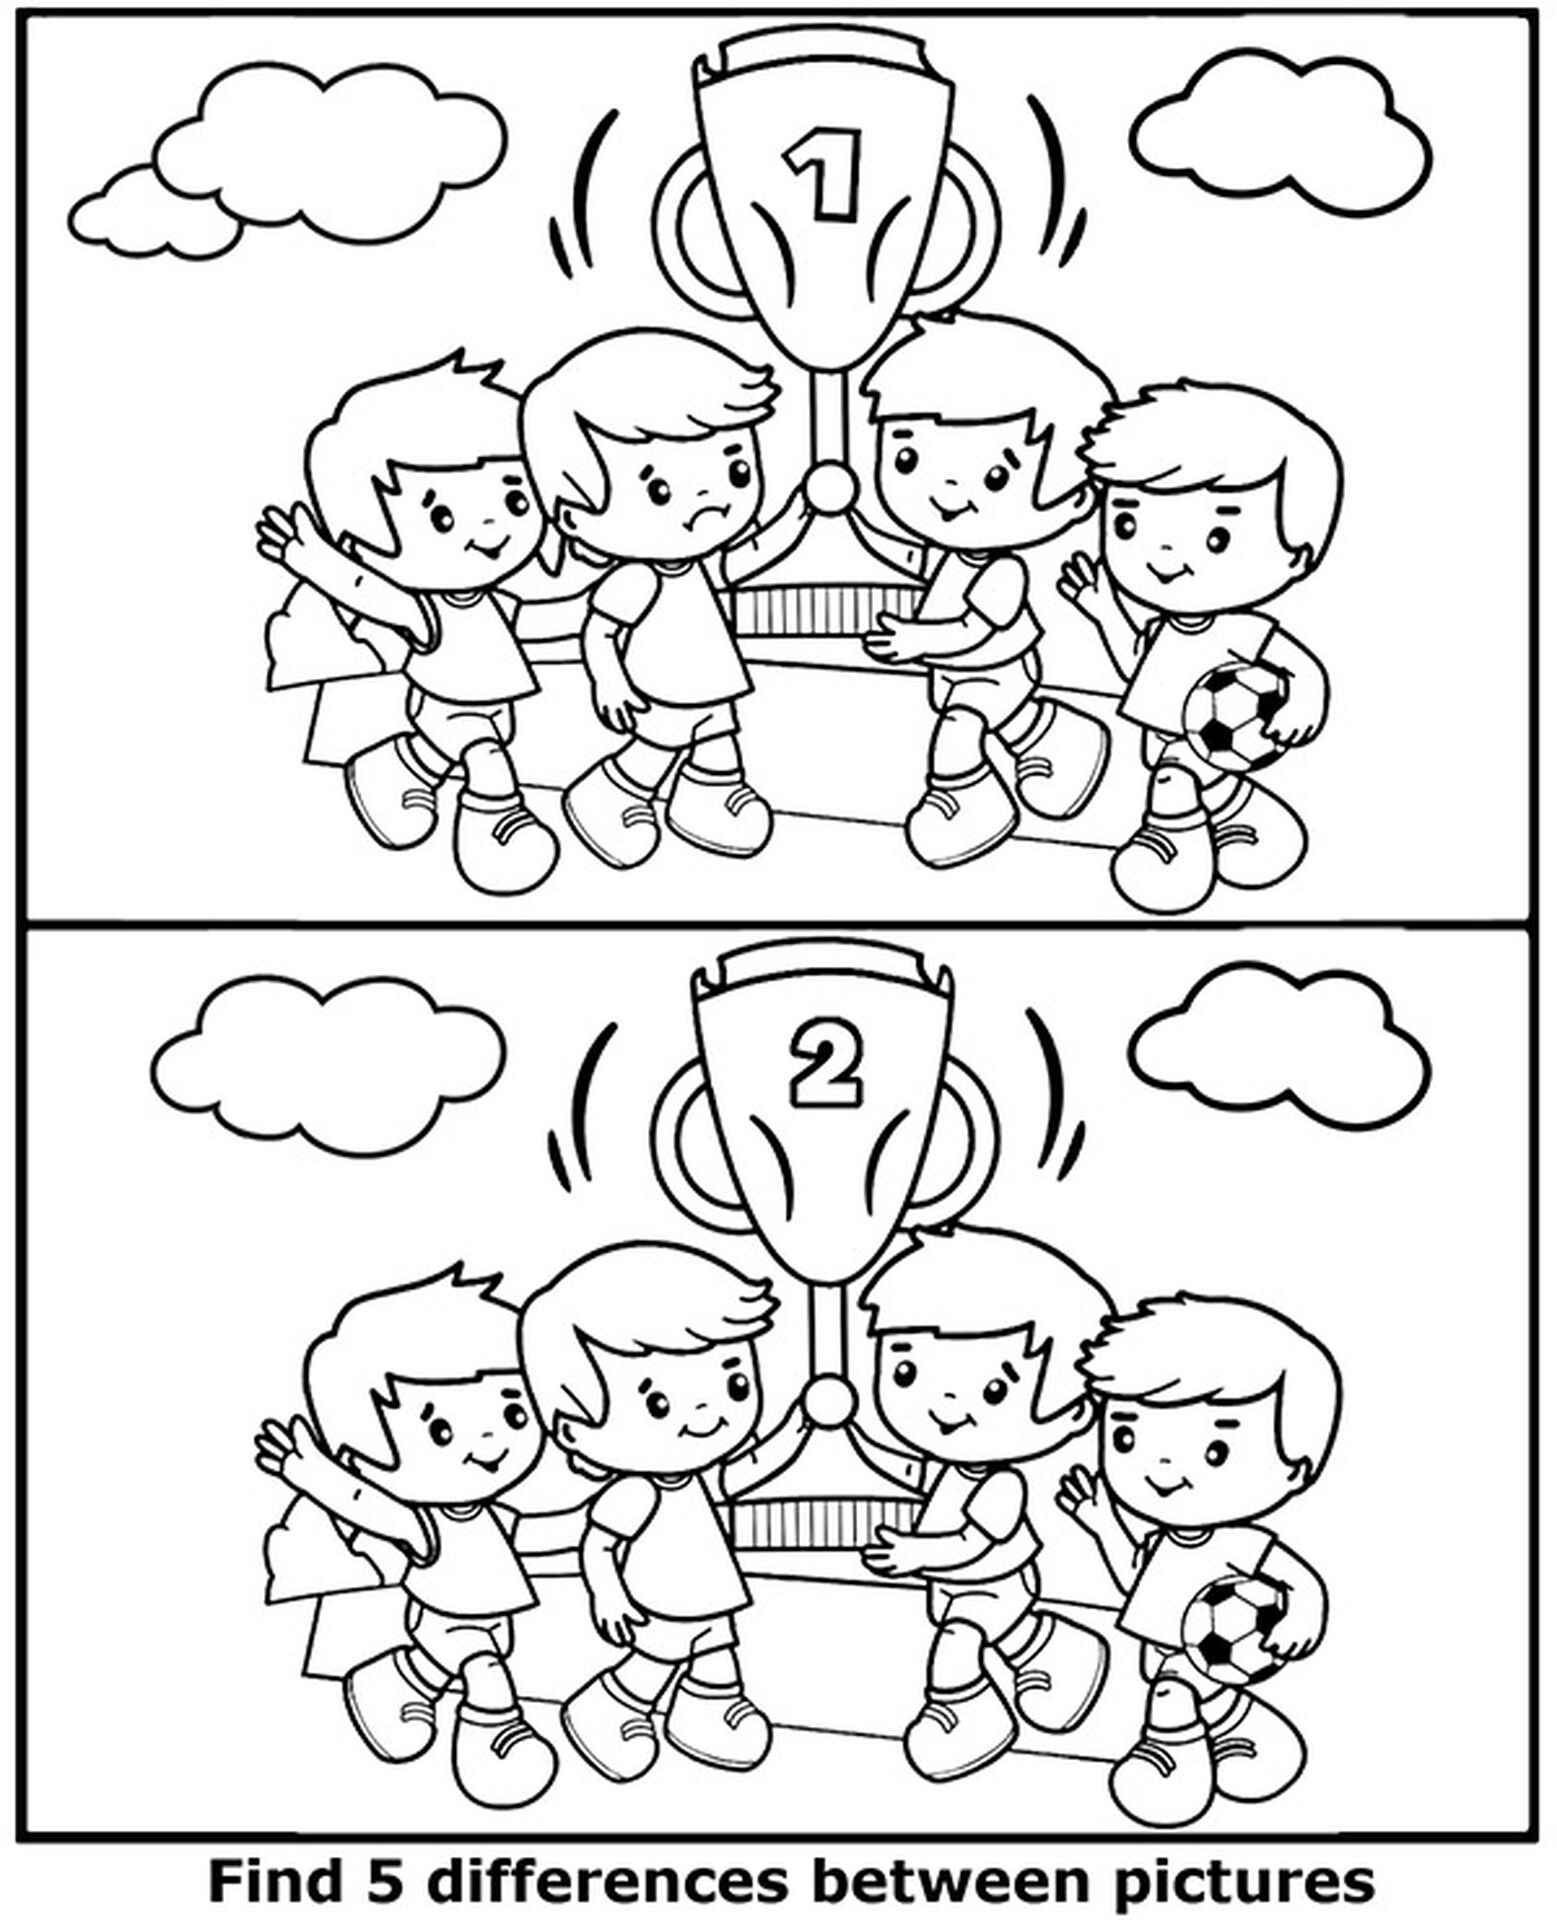 Spot 5 Differences Football Cup Coloring Page